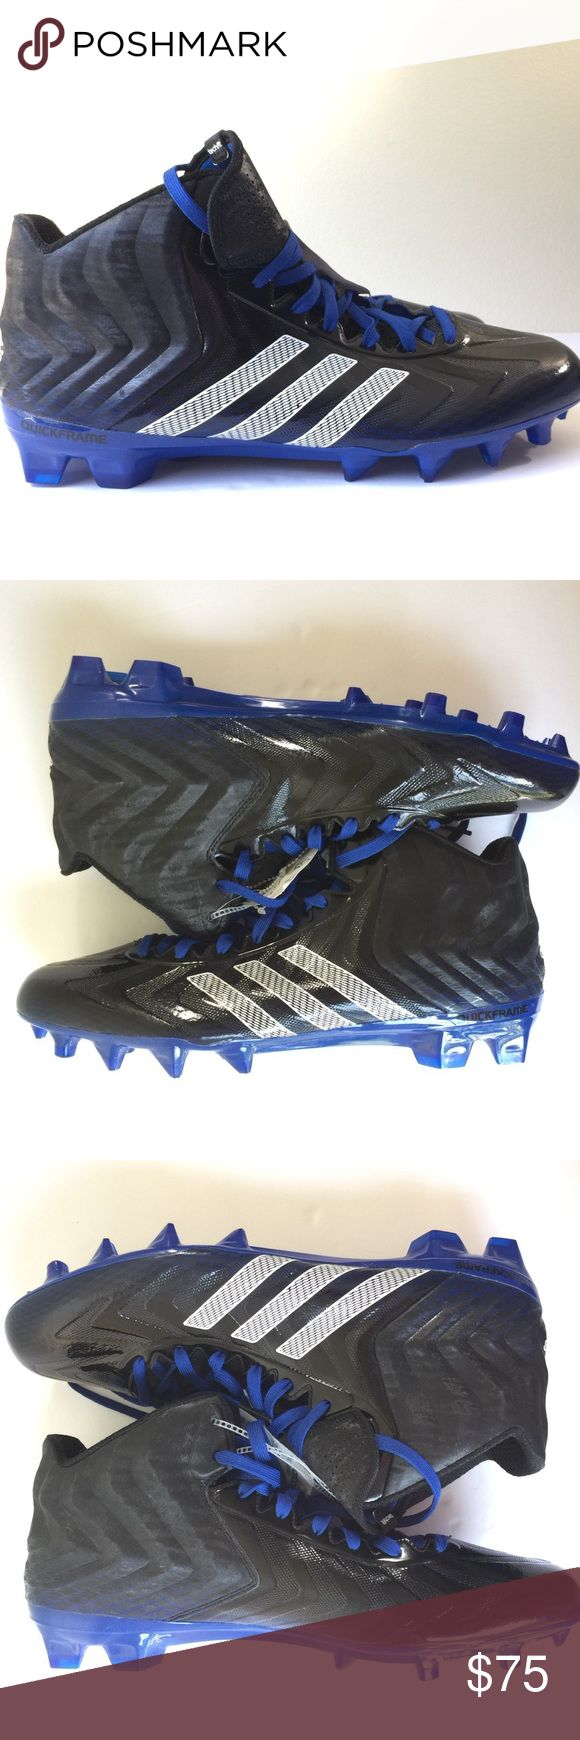 NWT Adidas Football Crazy Quick Mid Cleats Sneaker NWT No Box Adidas Football Crazy Quick Mid Cleats Shoes Sneakers Men's size 14 Black Blue UPC 887383496244 SKU C18 adidas Shoes Sneakers